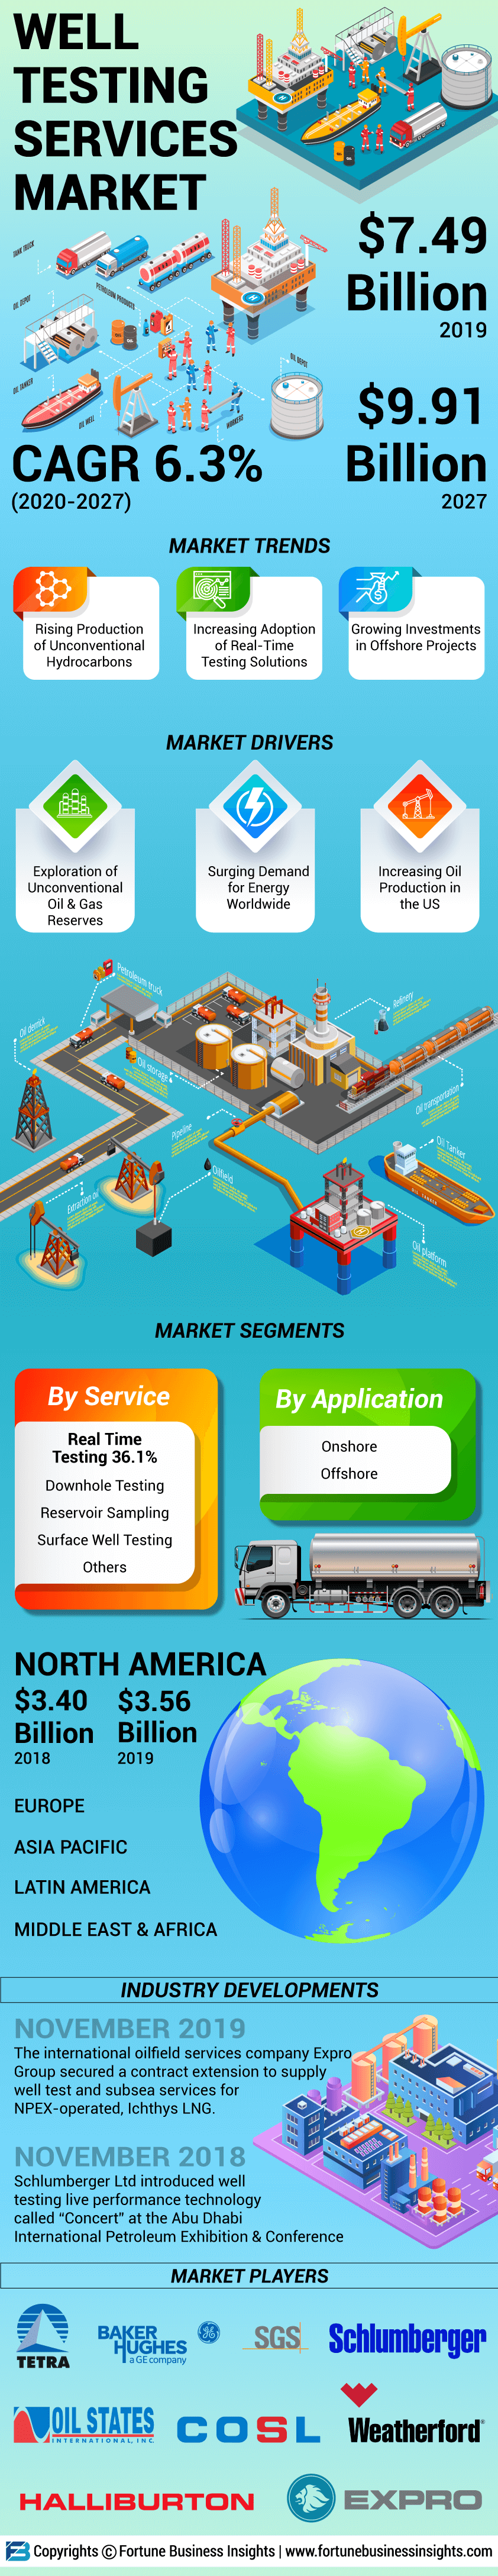 Well Testing Service Market